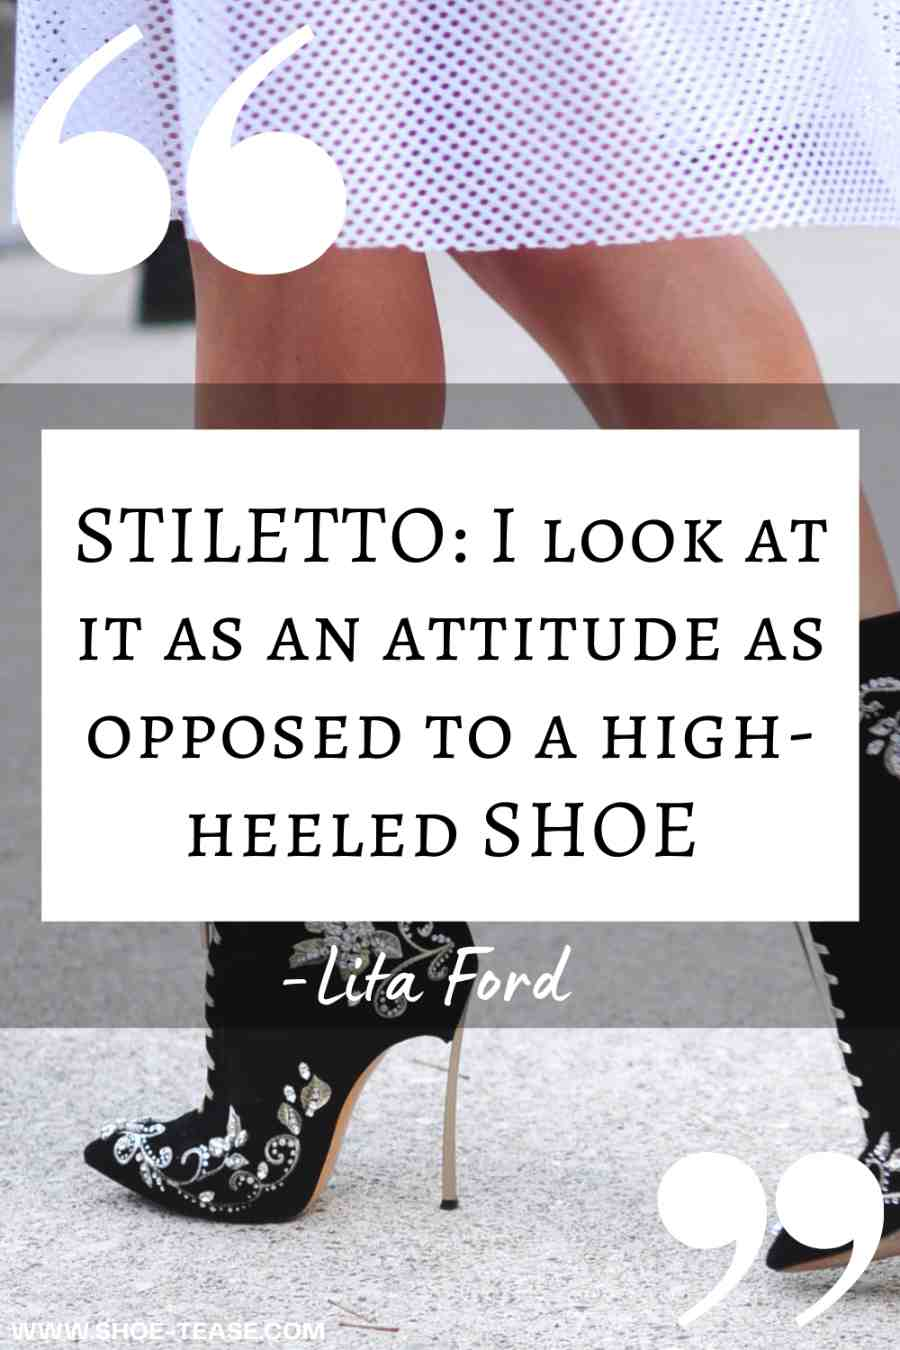 """Stiletto Quote reading """"I look at it as an attitude as opposed to a high heeled shoe - Lita Ford"""" over image of woman in black embroidered stiletto booties."""